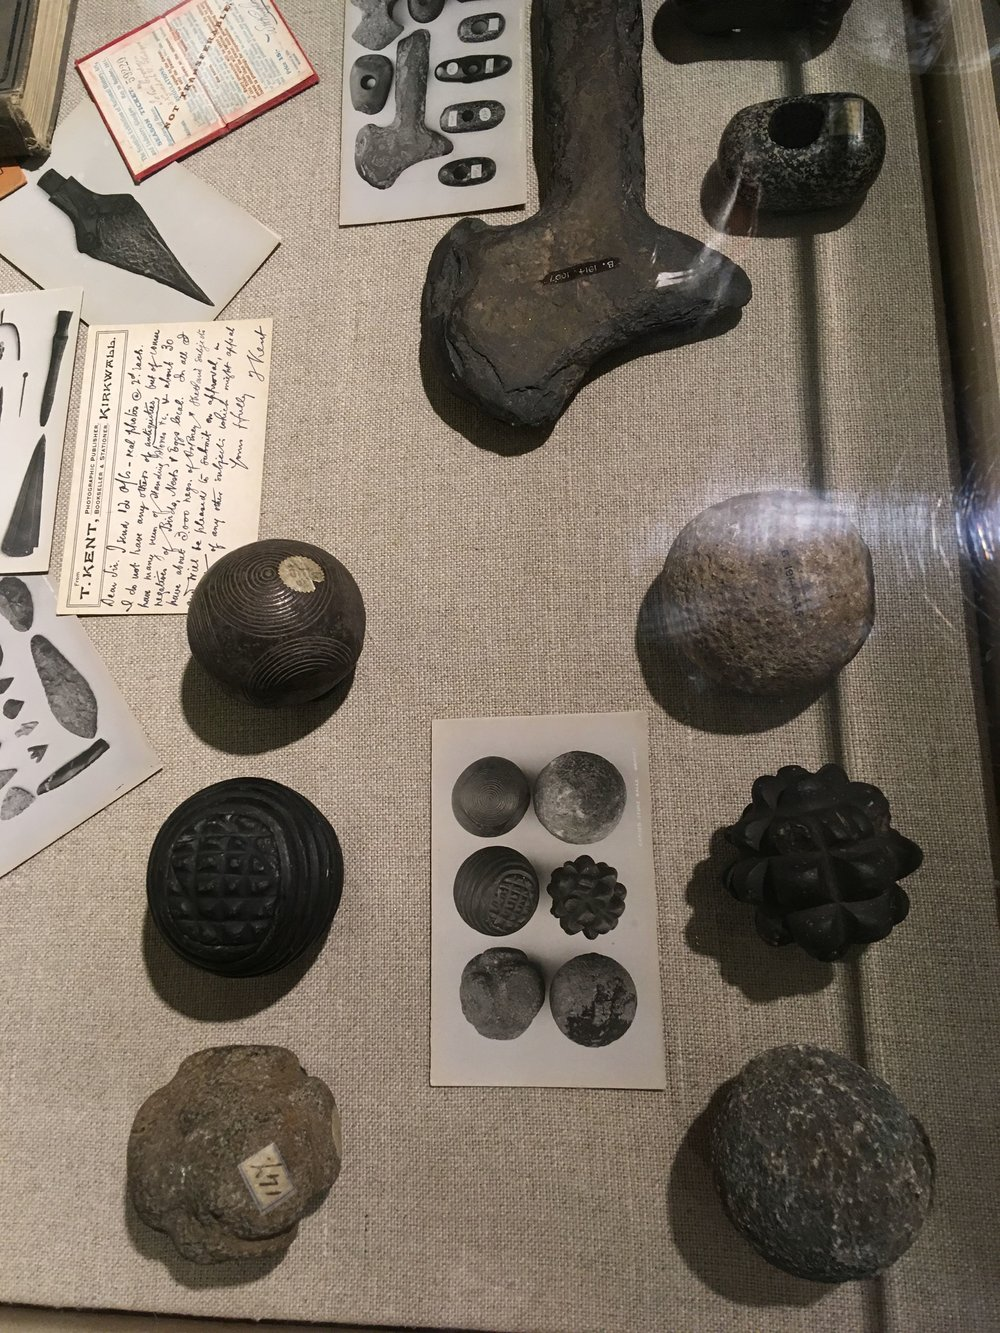 Carved stone balls in the Kirkwall City Museum.